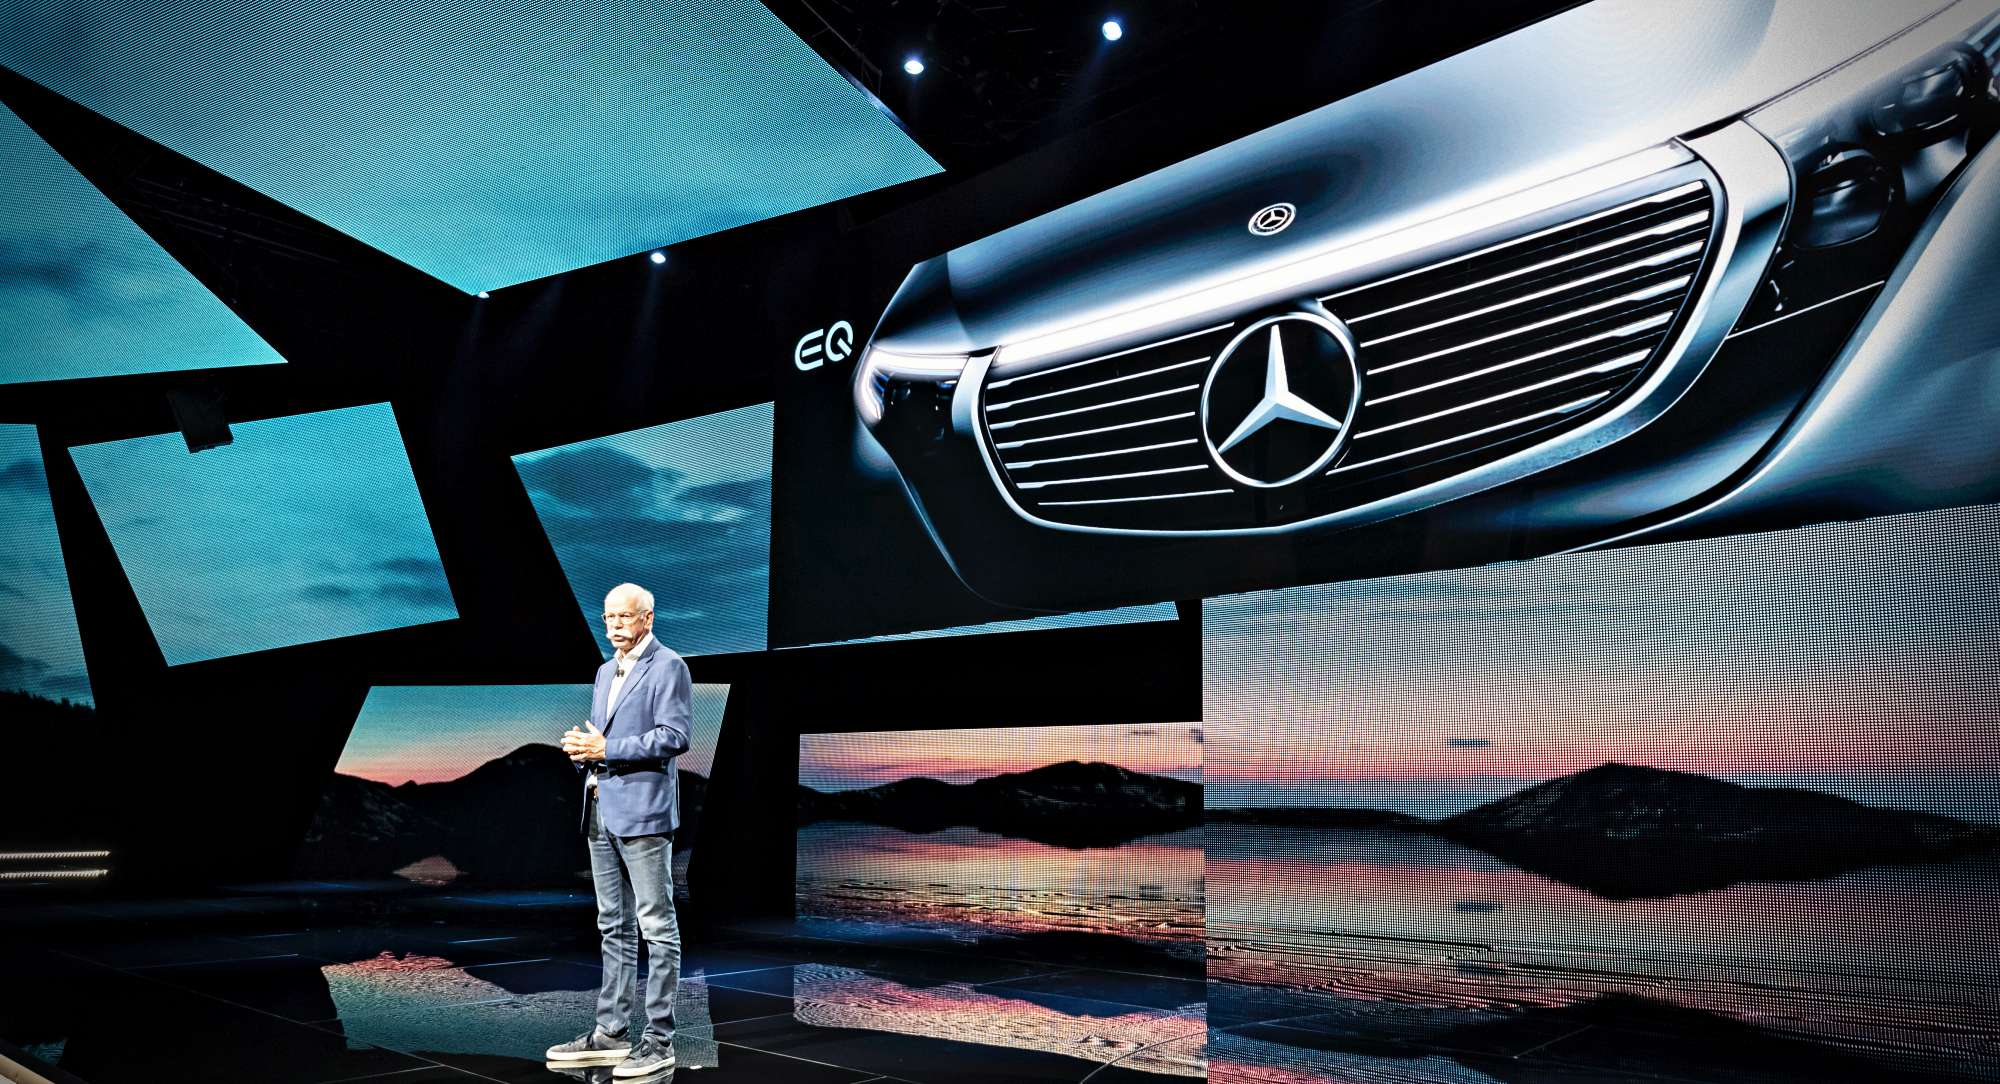 Weltpremiere des neuen Mercedes-Benz EQC in Stockholm: Dieter Zetsche, Vorsitzender des Vorstands der Daimler AG und Leiter Mercedes-Benz Cars präseniert den neuen Mercedes-Benz EQC 400 4MATIC. (Stromverbrauch kombiniert: 22,2 kWh/100 km; CO2-Emissionen kombiniert: 0 g/km, Angaben vorläufig)// World premiere of the new Mercedes-Benz EQC in Stockholm: Dieter Zetsche, Chairman of the Board of Management of Daimler AG and Head of Mercedes-Benz Cars presenting the new Mercedes-Benz EQC 400 4MATIC. (combined power consumption: 22.2 kWh/100 km; combined CO2 emissions: 0 g/km, provisional